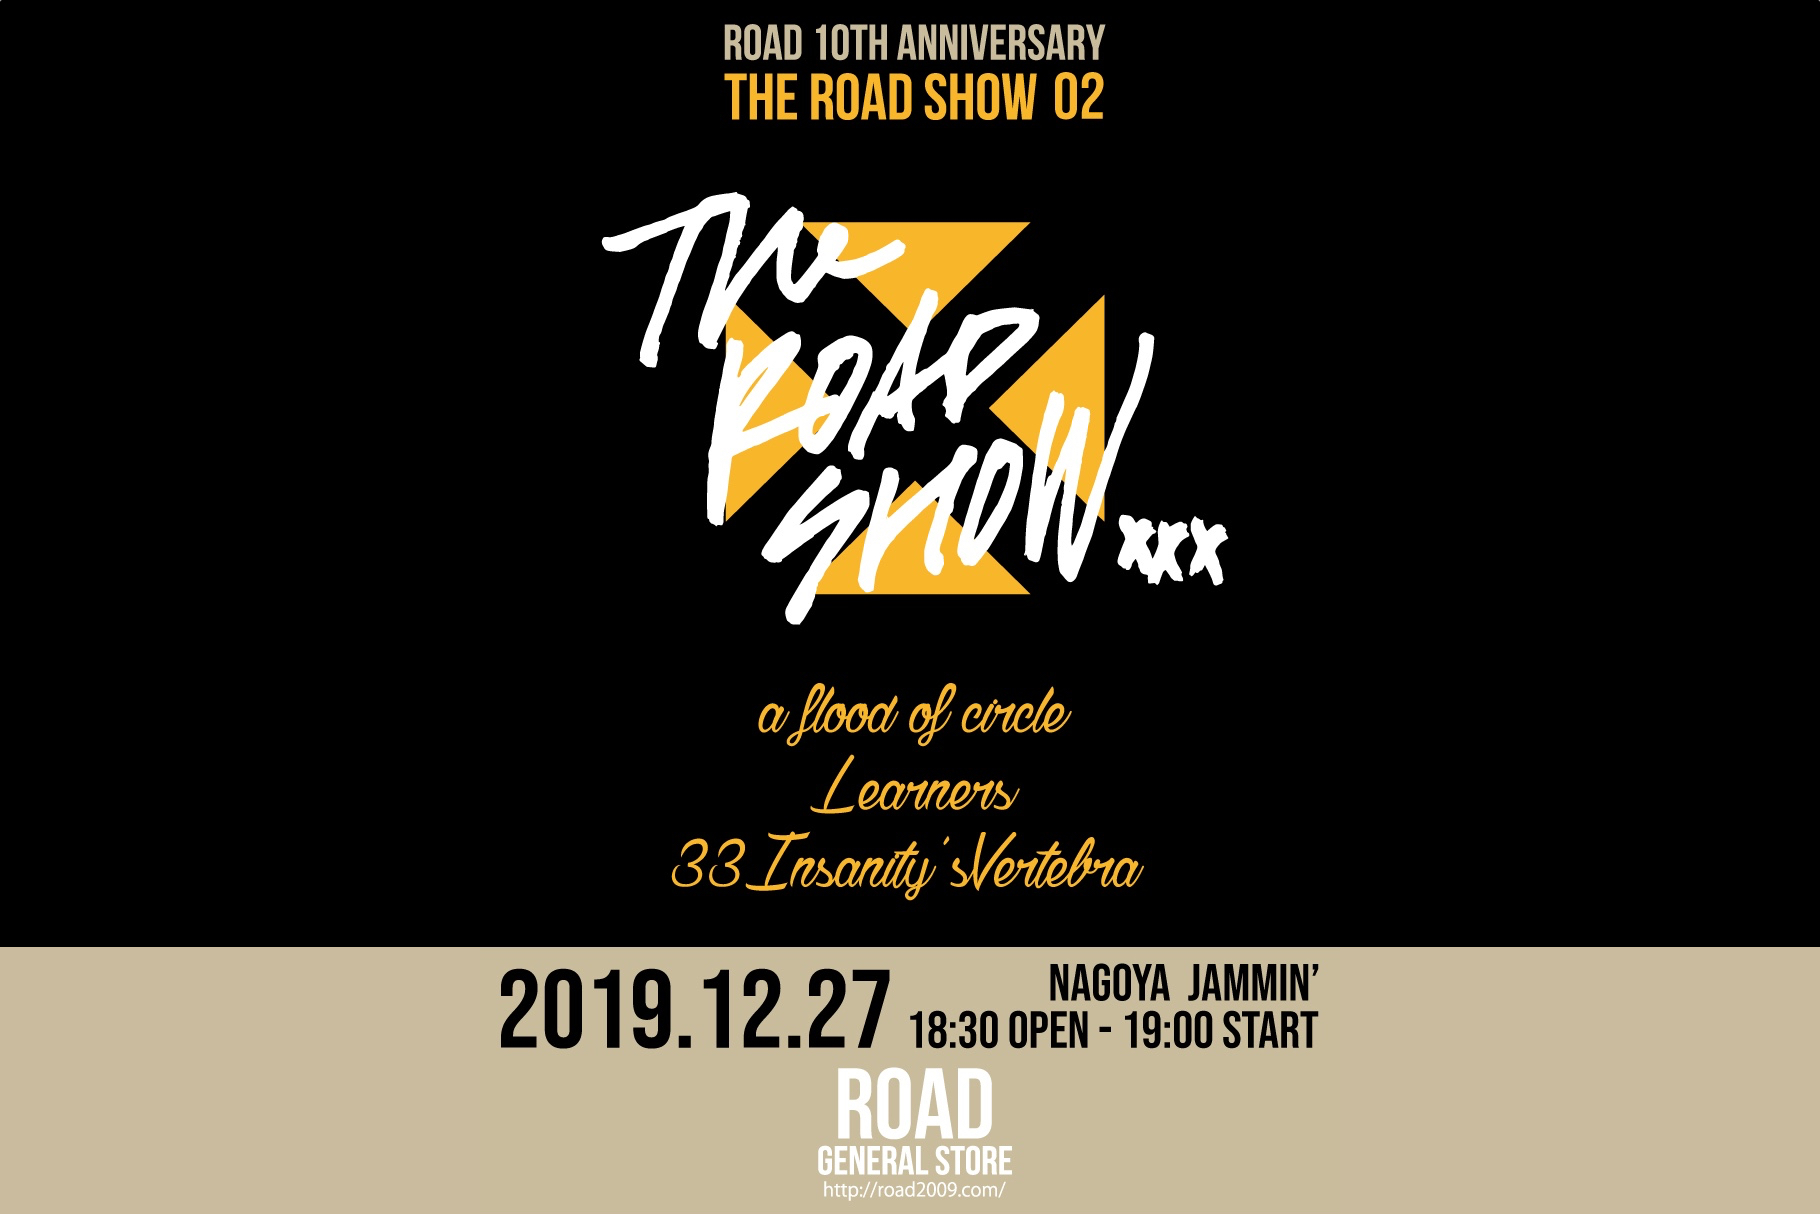 THE ROAD SHOW 第2弾の開催が決定。AFOC / LEARNERS / 33IVが出演